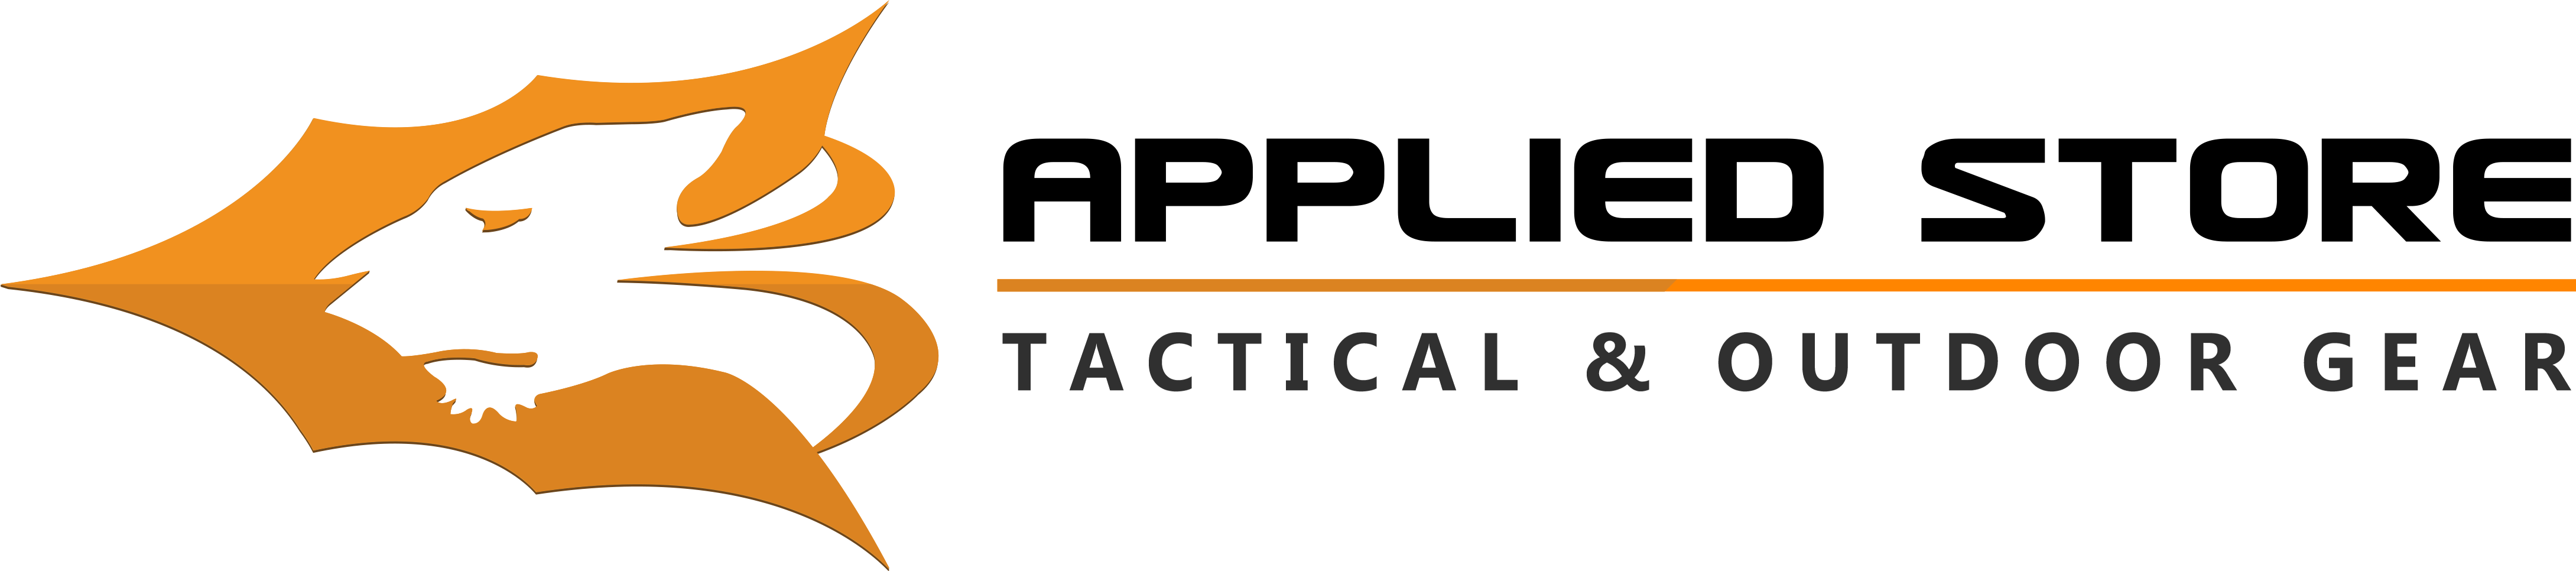 Applied Store Tactical - Tactical & Outdoor Gear - Militaire Uitrusting